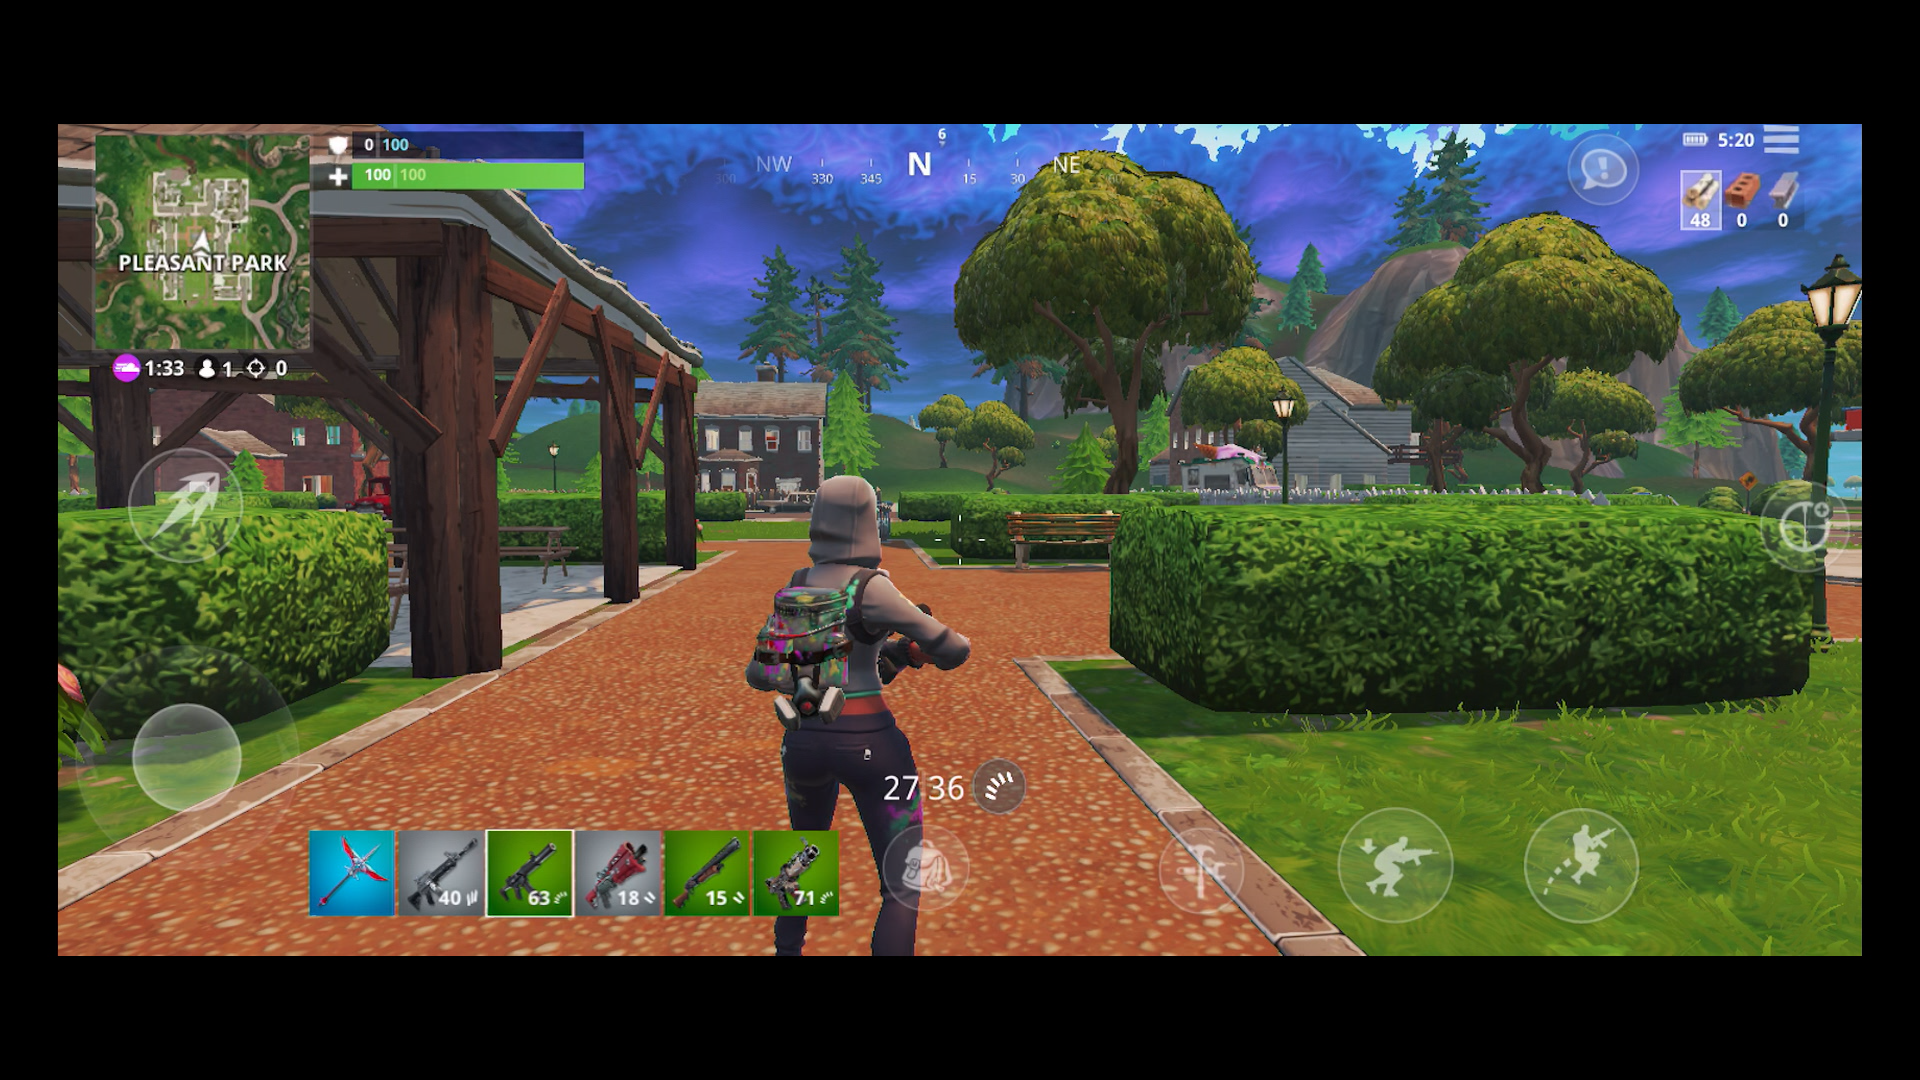 Problems with fortnite mobile